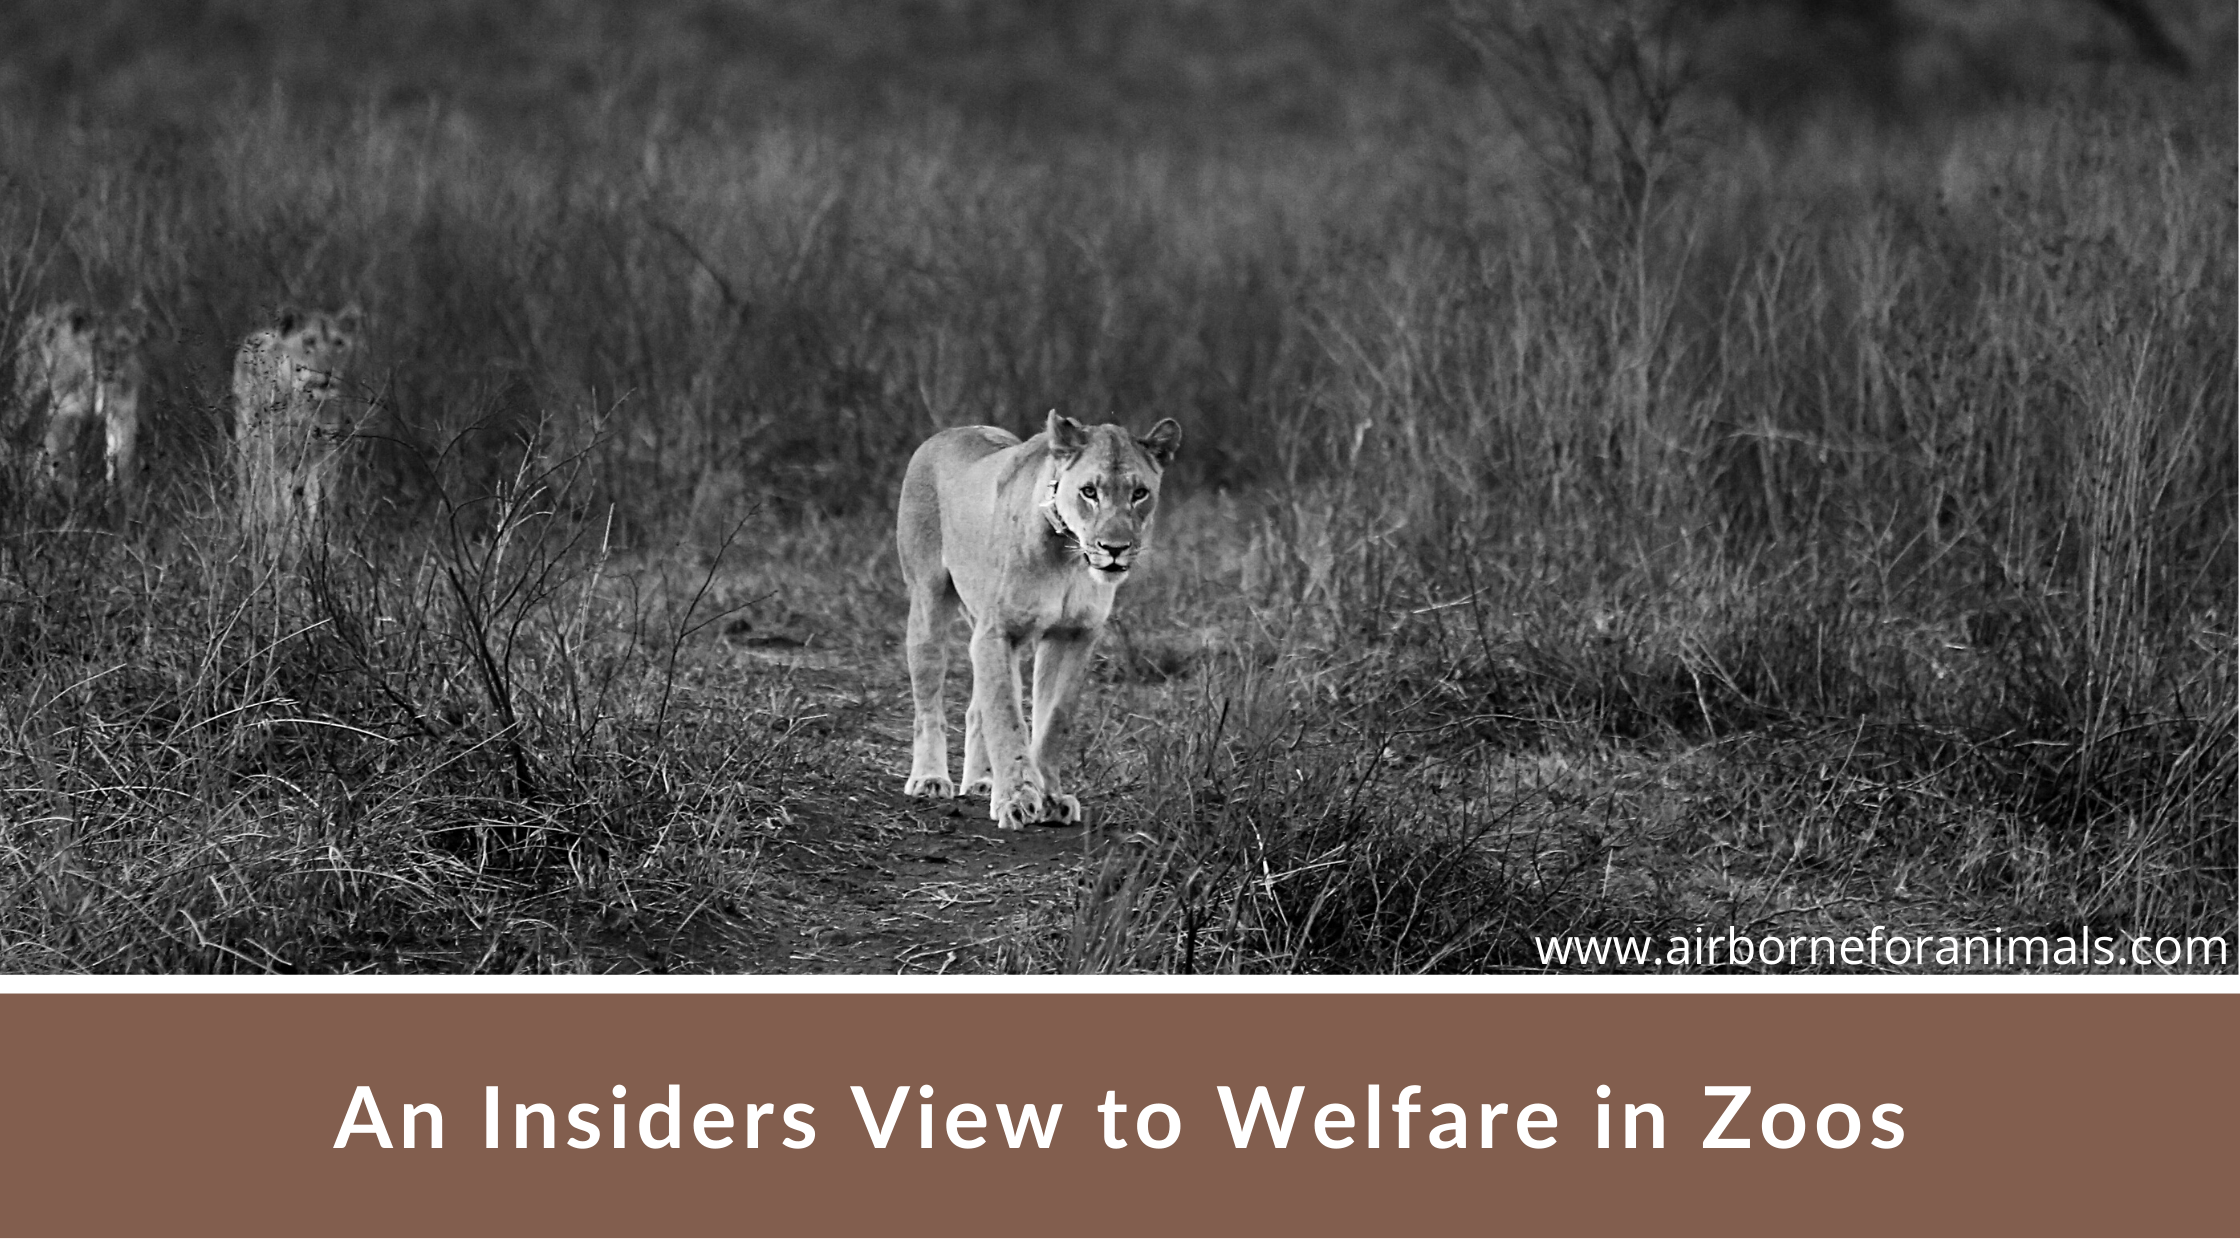 An Insiders View to Welfare in Zoos